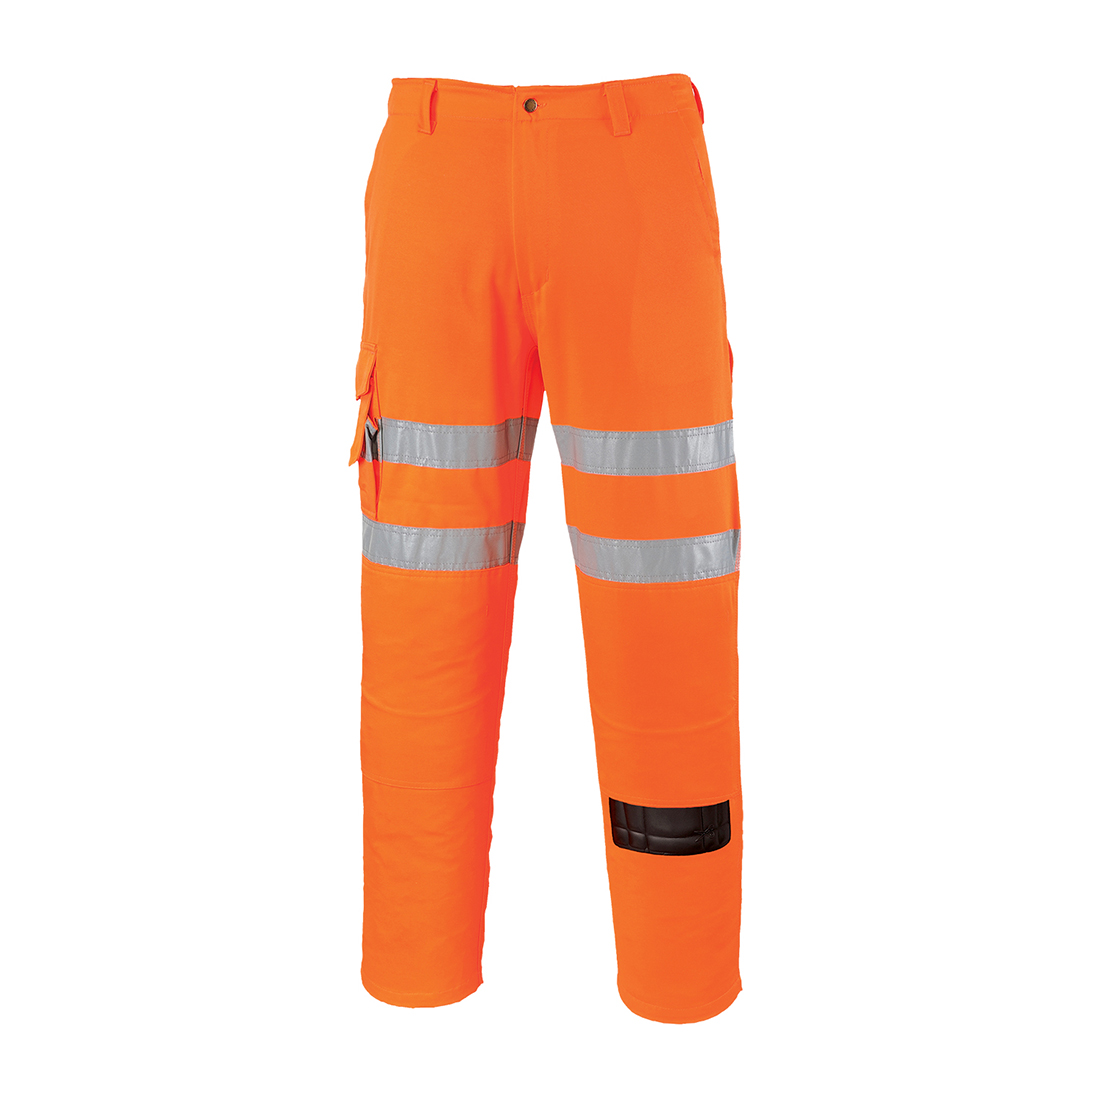 Rail Combat Trousers Orange Large